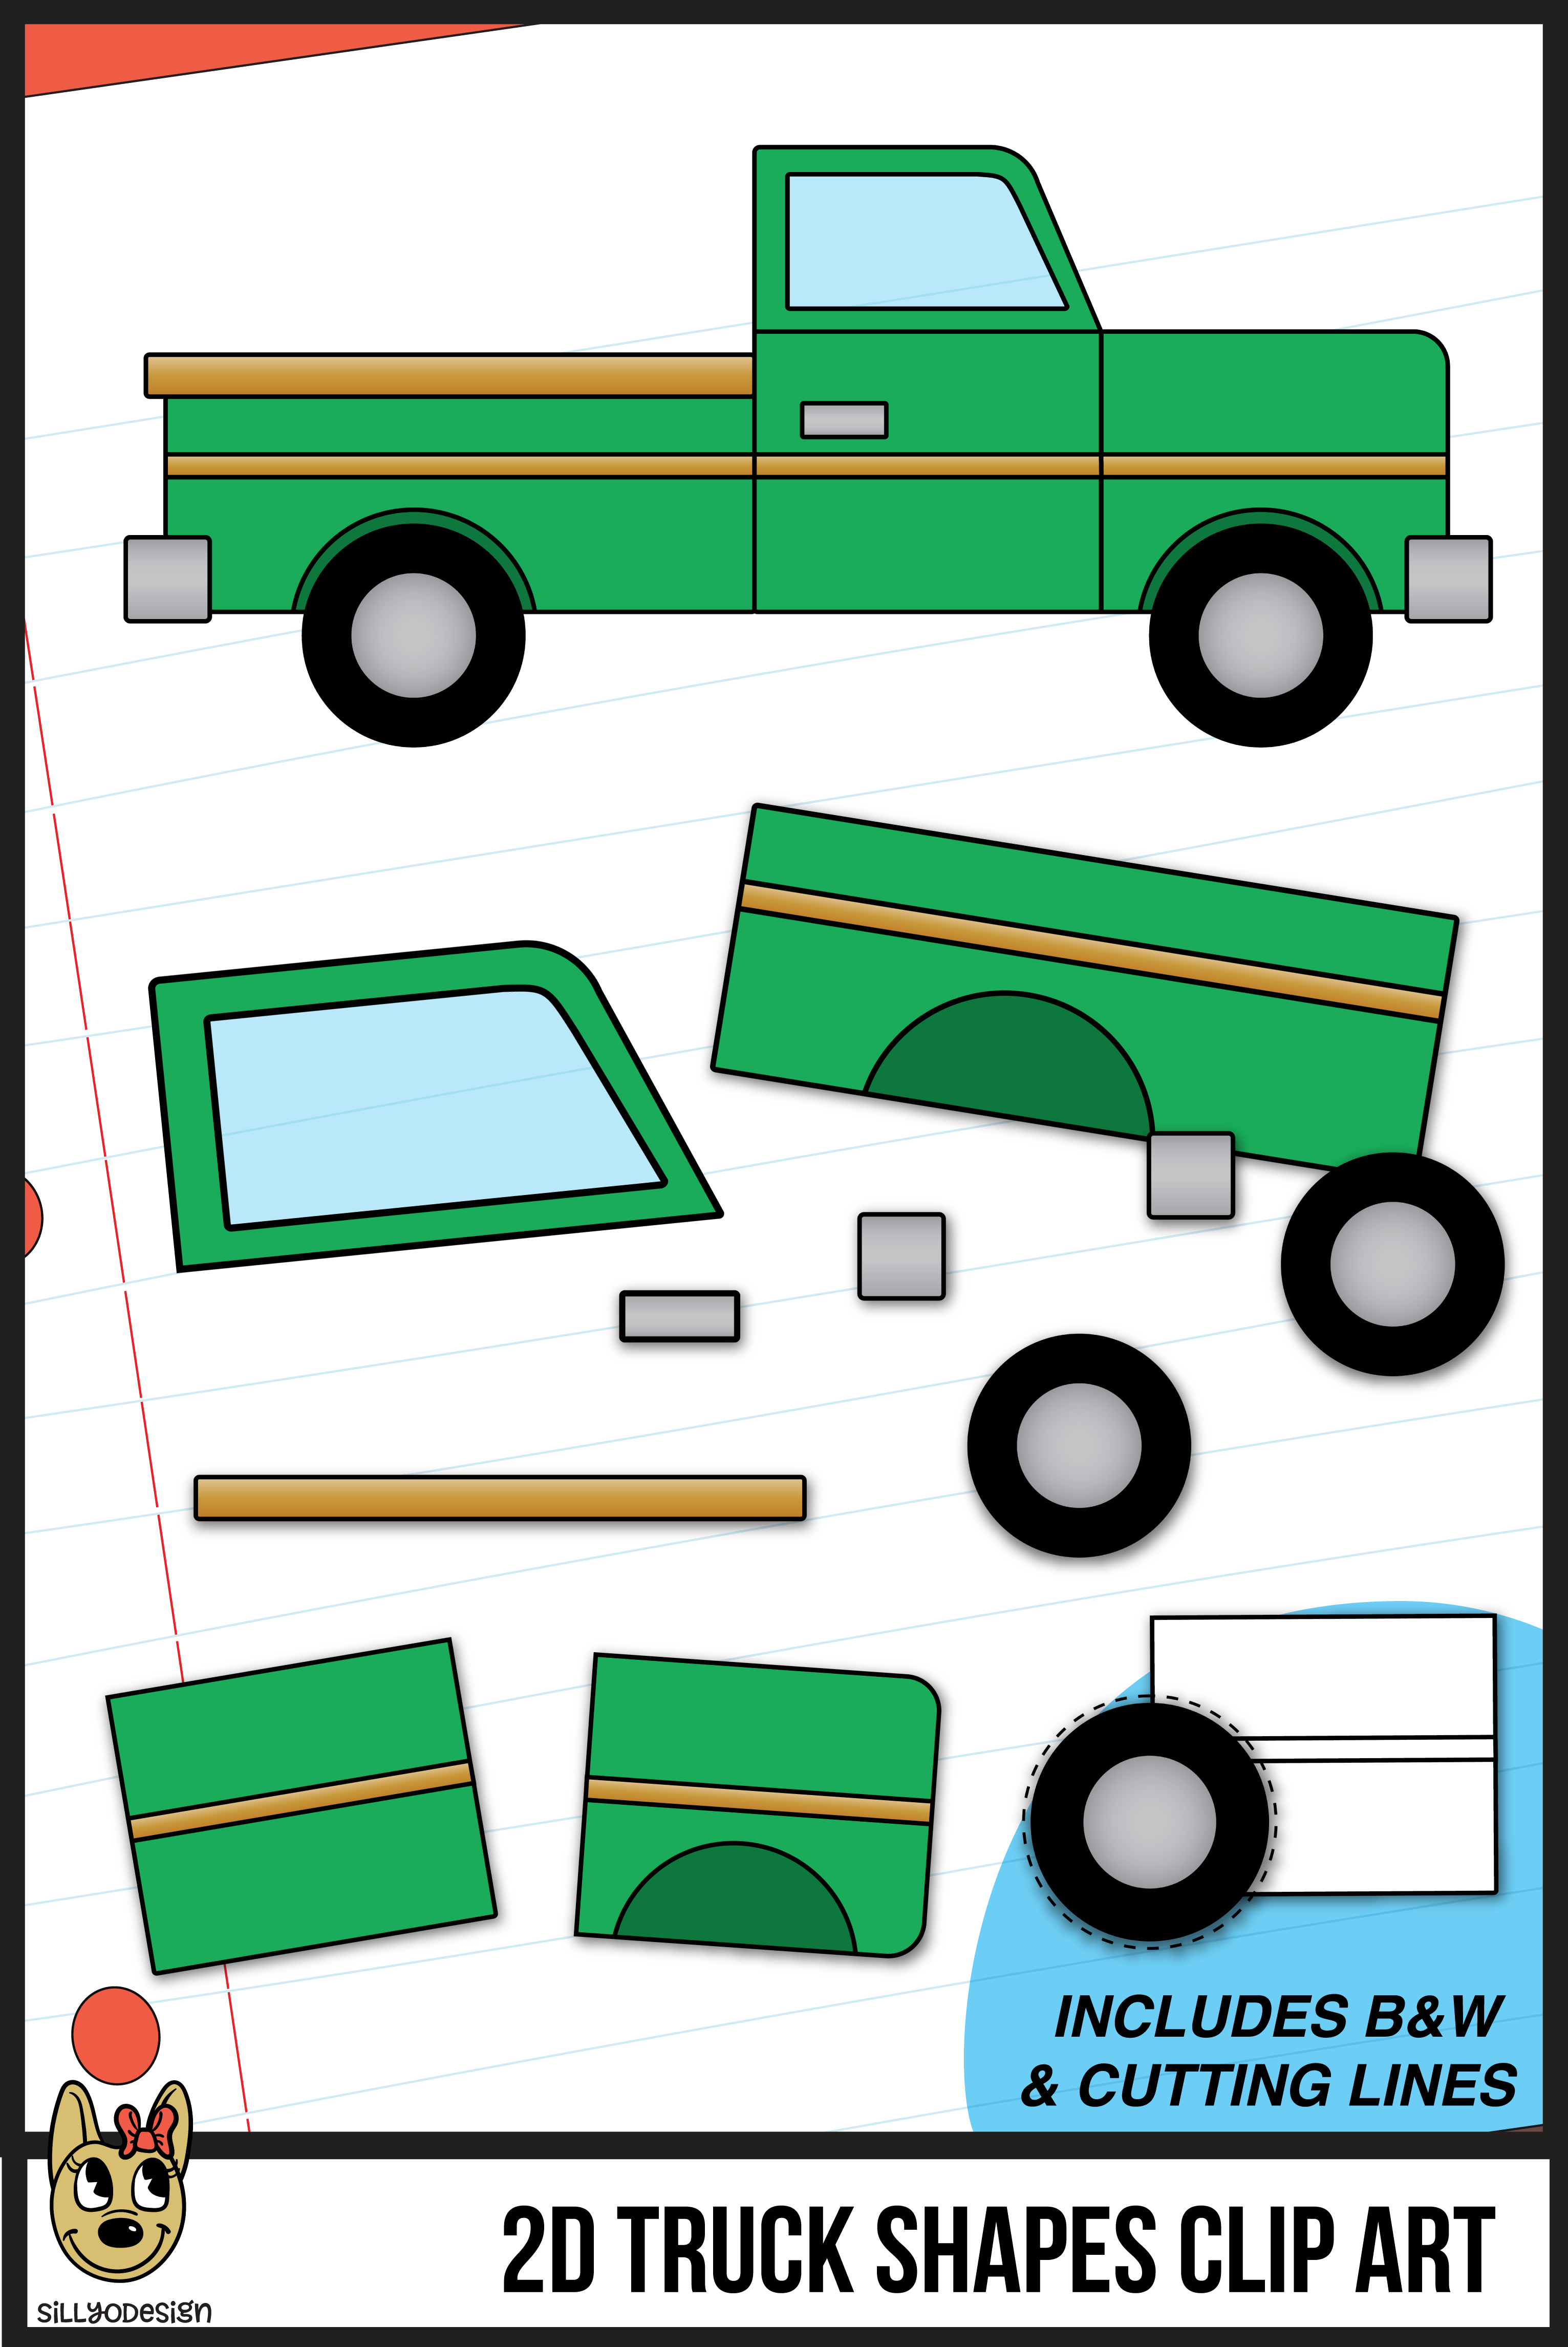 Pin On Sillyodesign Clip Art